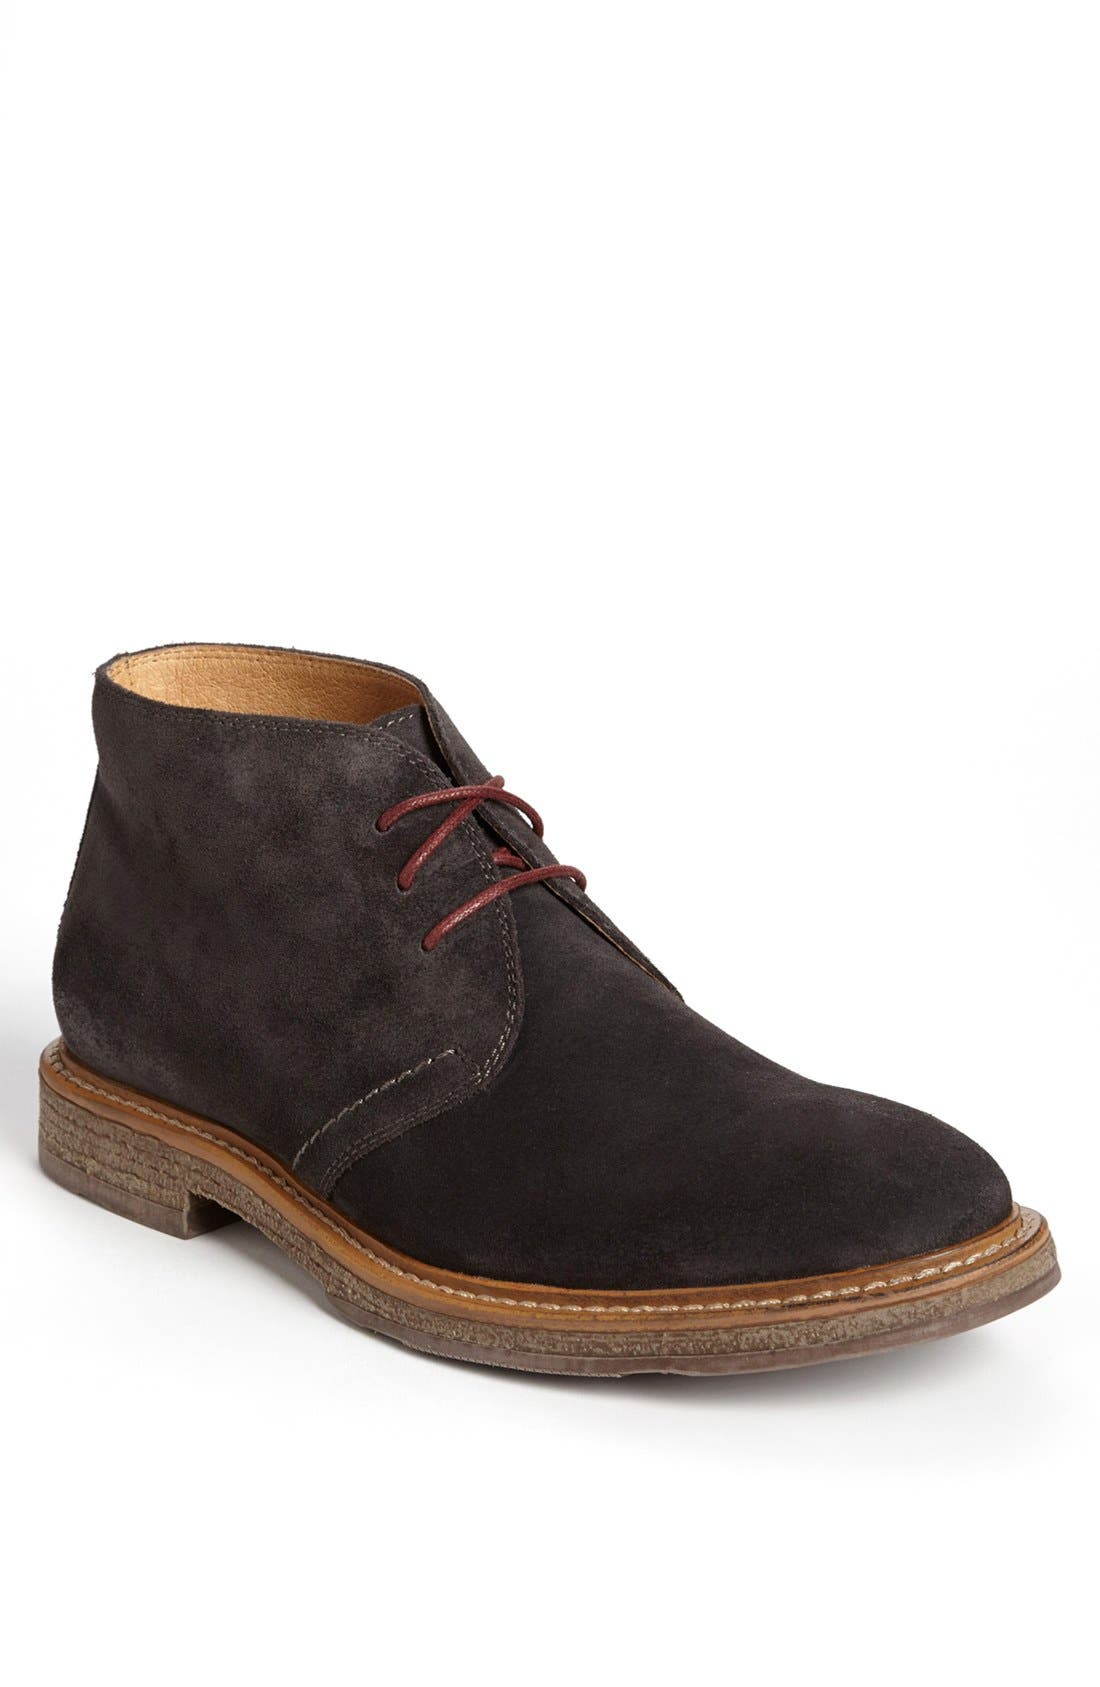 'Canyon' Chukka Boot,                         Main,                         color,